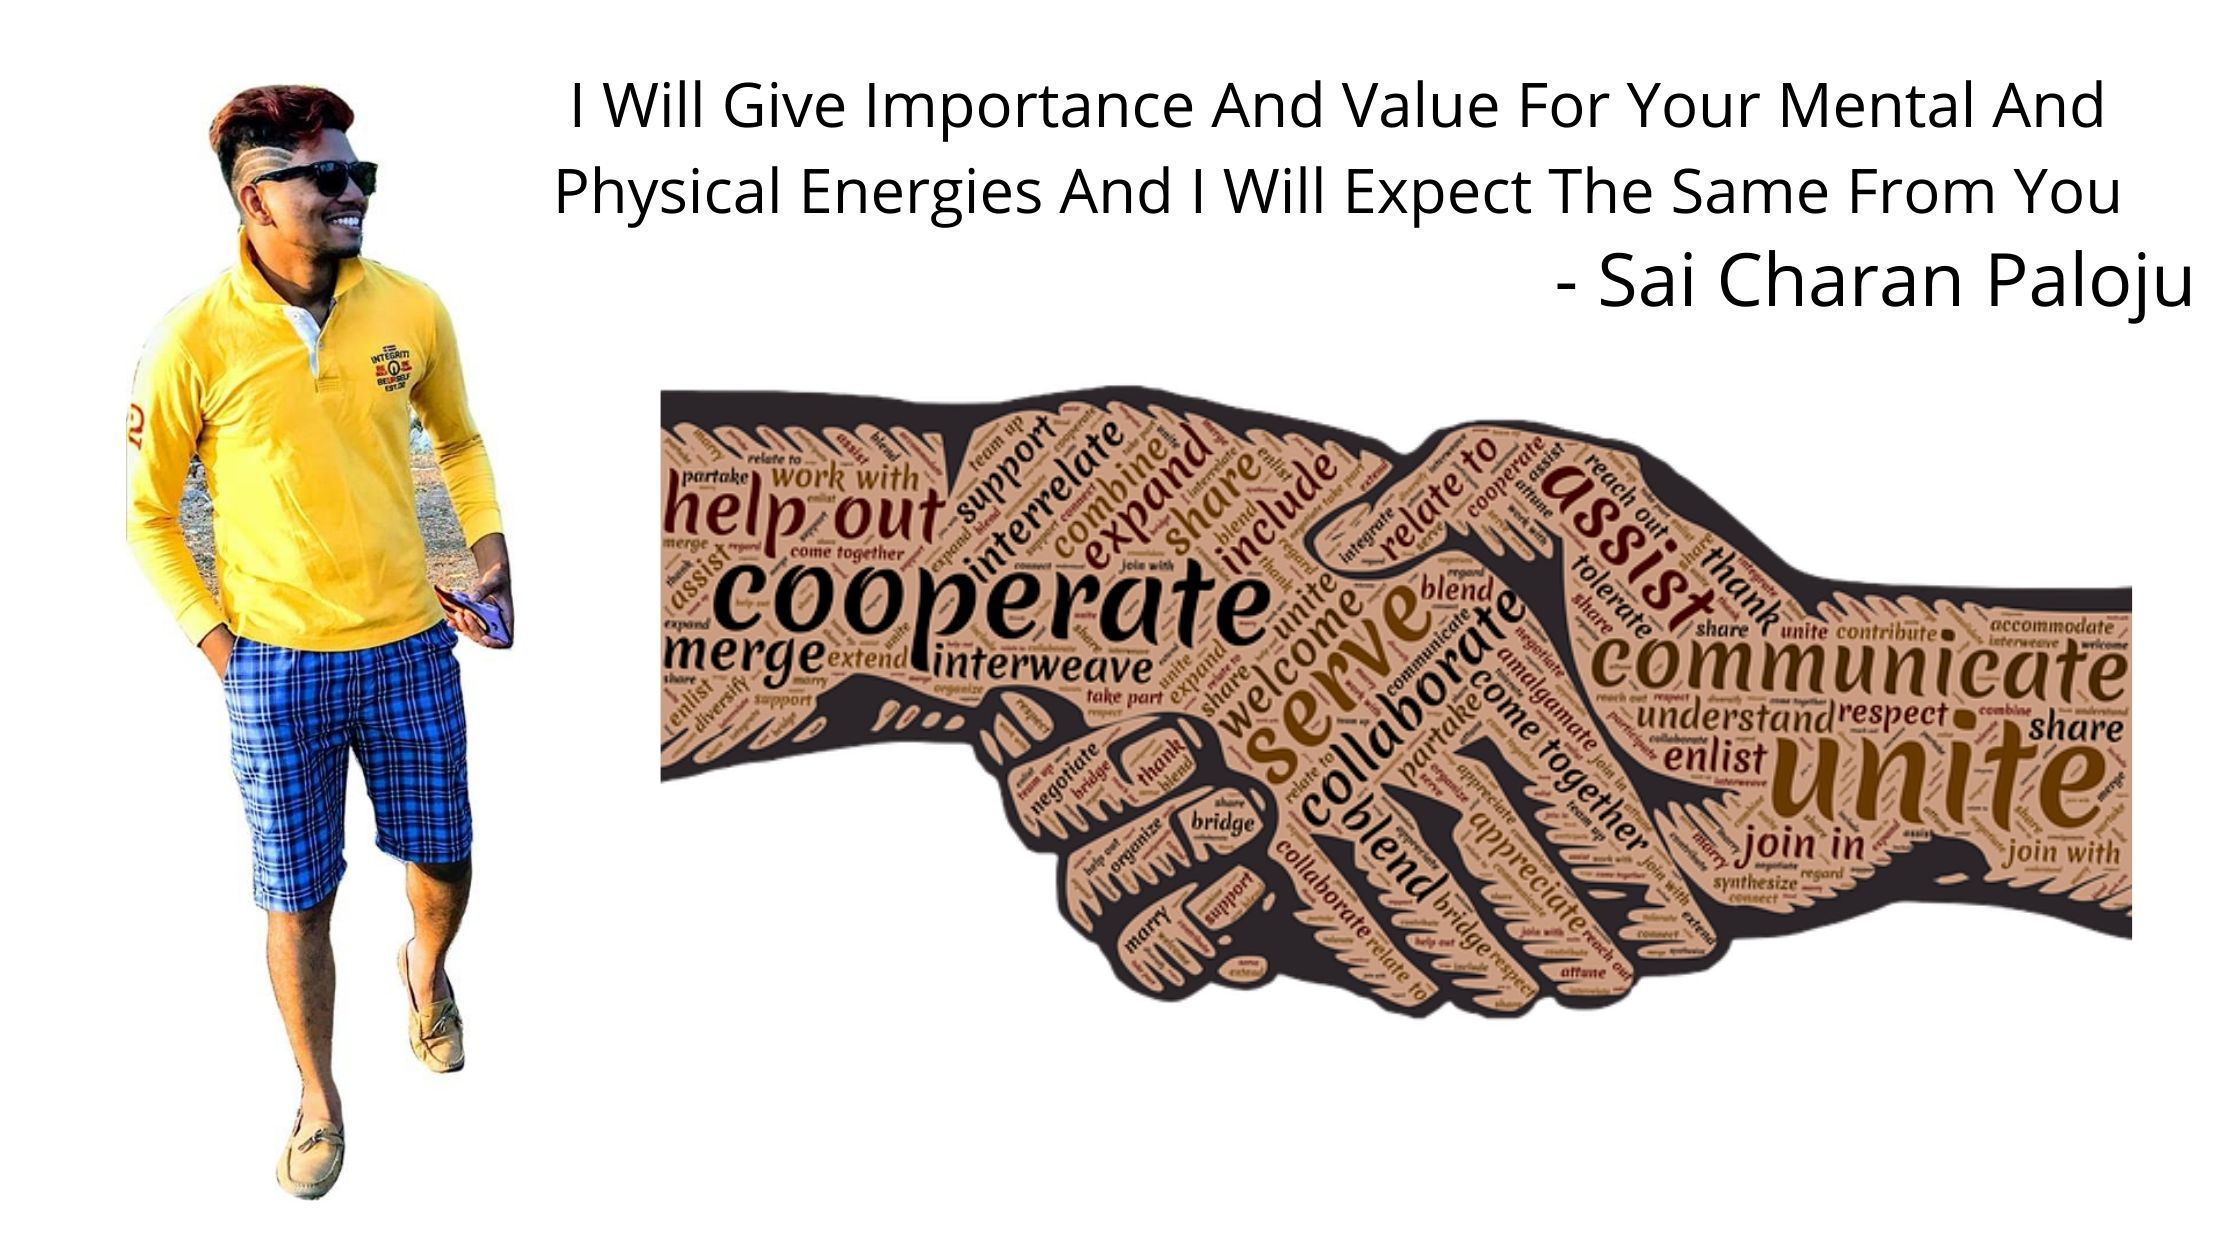 I Will Give Importance And Value For Your Mental And Physical Energies And I Will Expect The Same From You